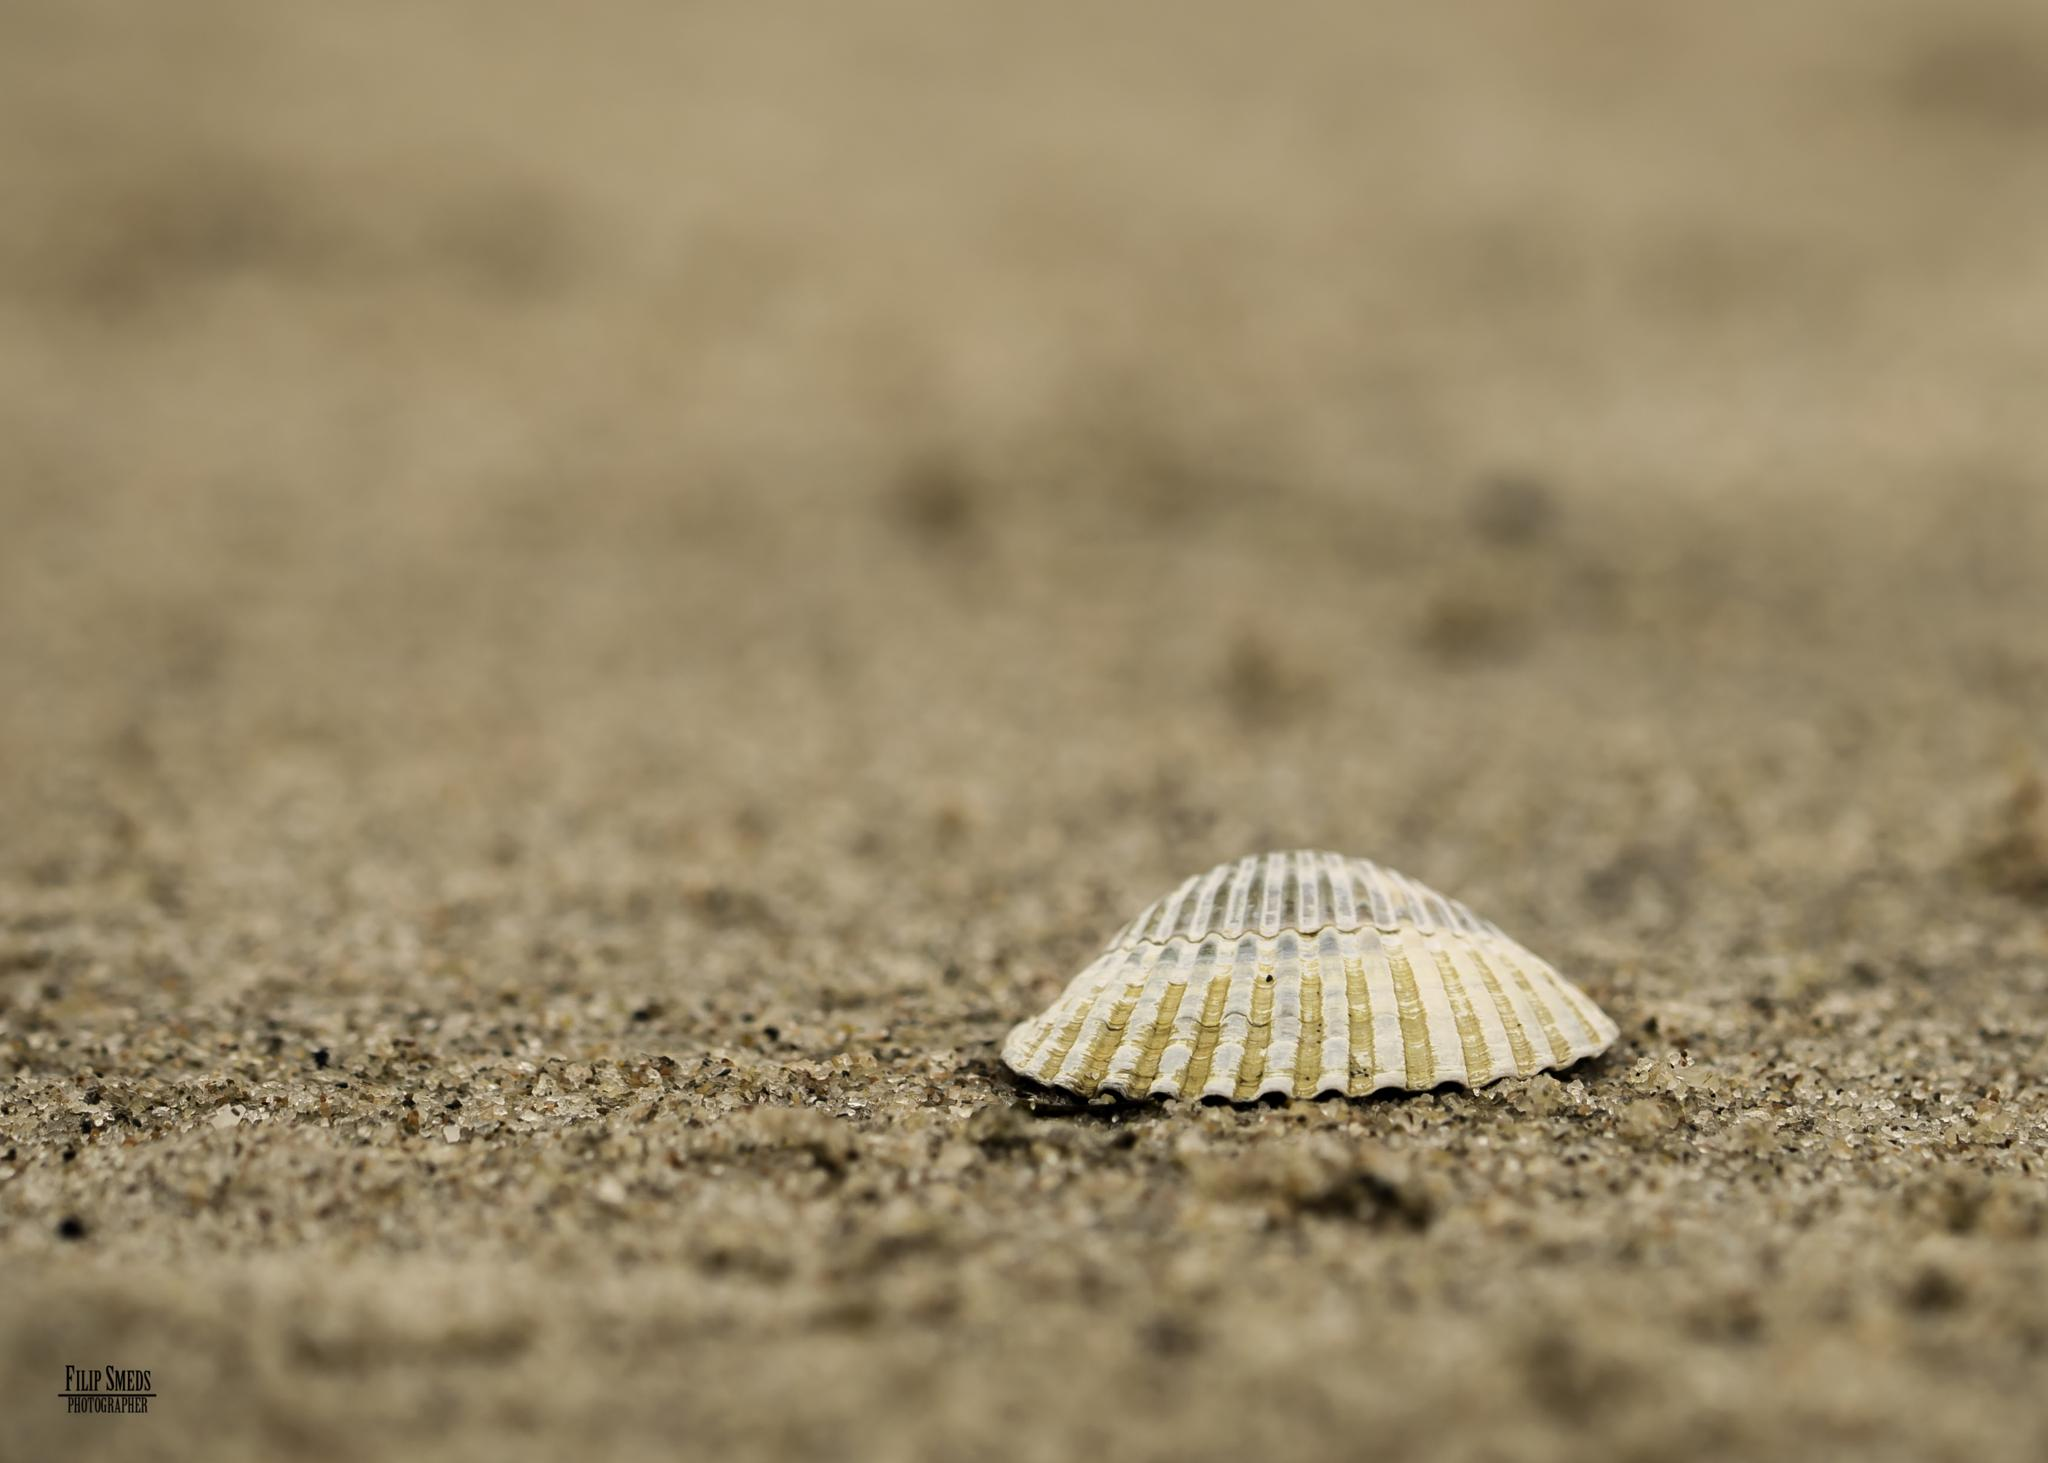 At the beach by Filip Smeds